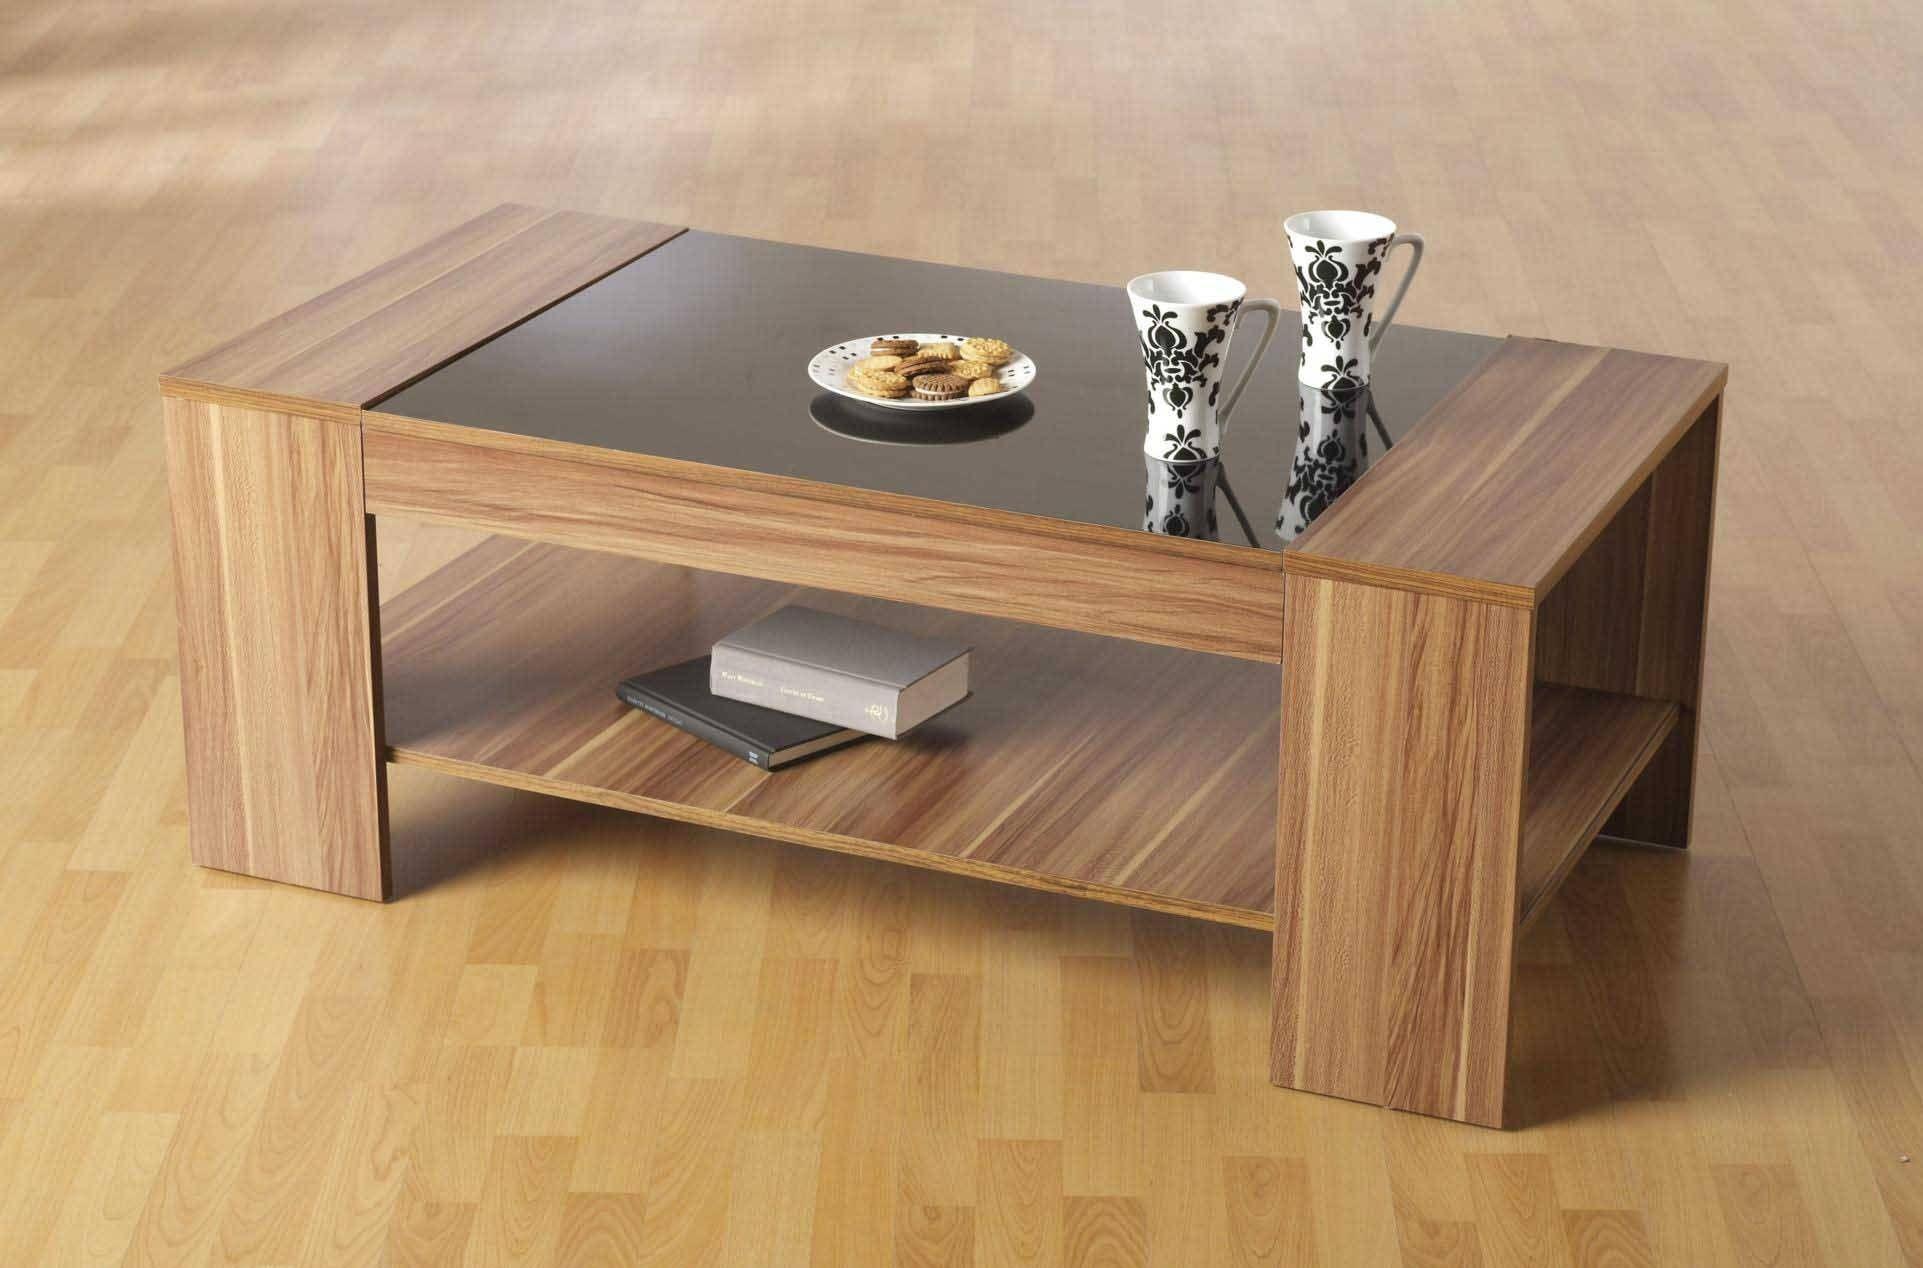 Coffee Tables Ideas: Wood Coffee Table With Glass Top Uk Glass Top regarding Oak Coffee Table With Glass Top (Image 6 of 15)